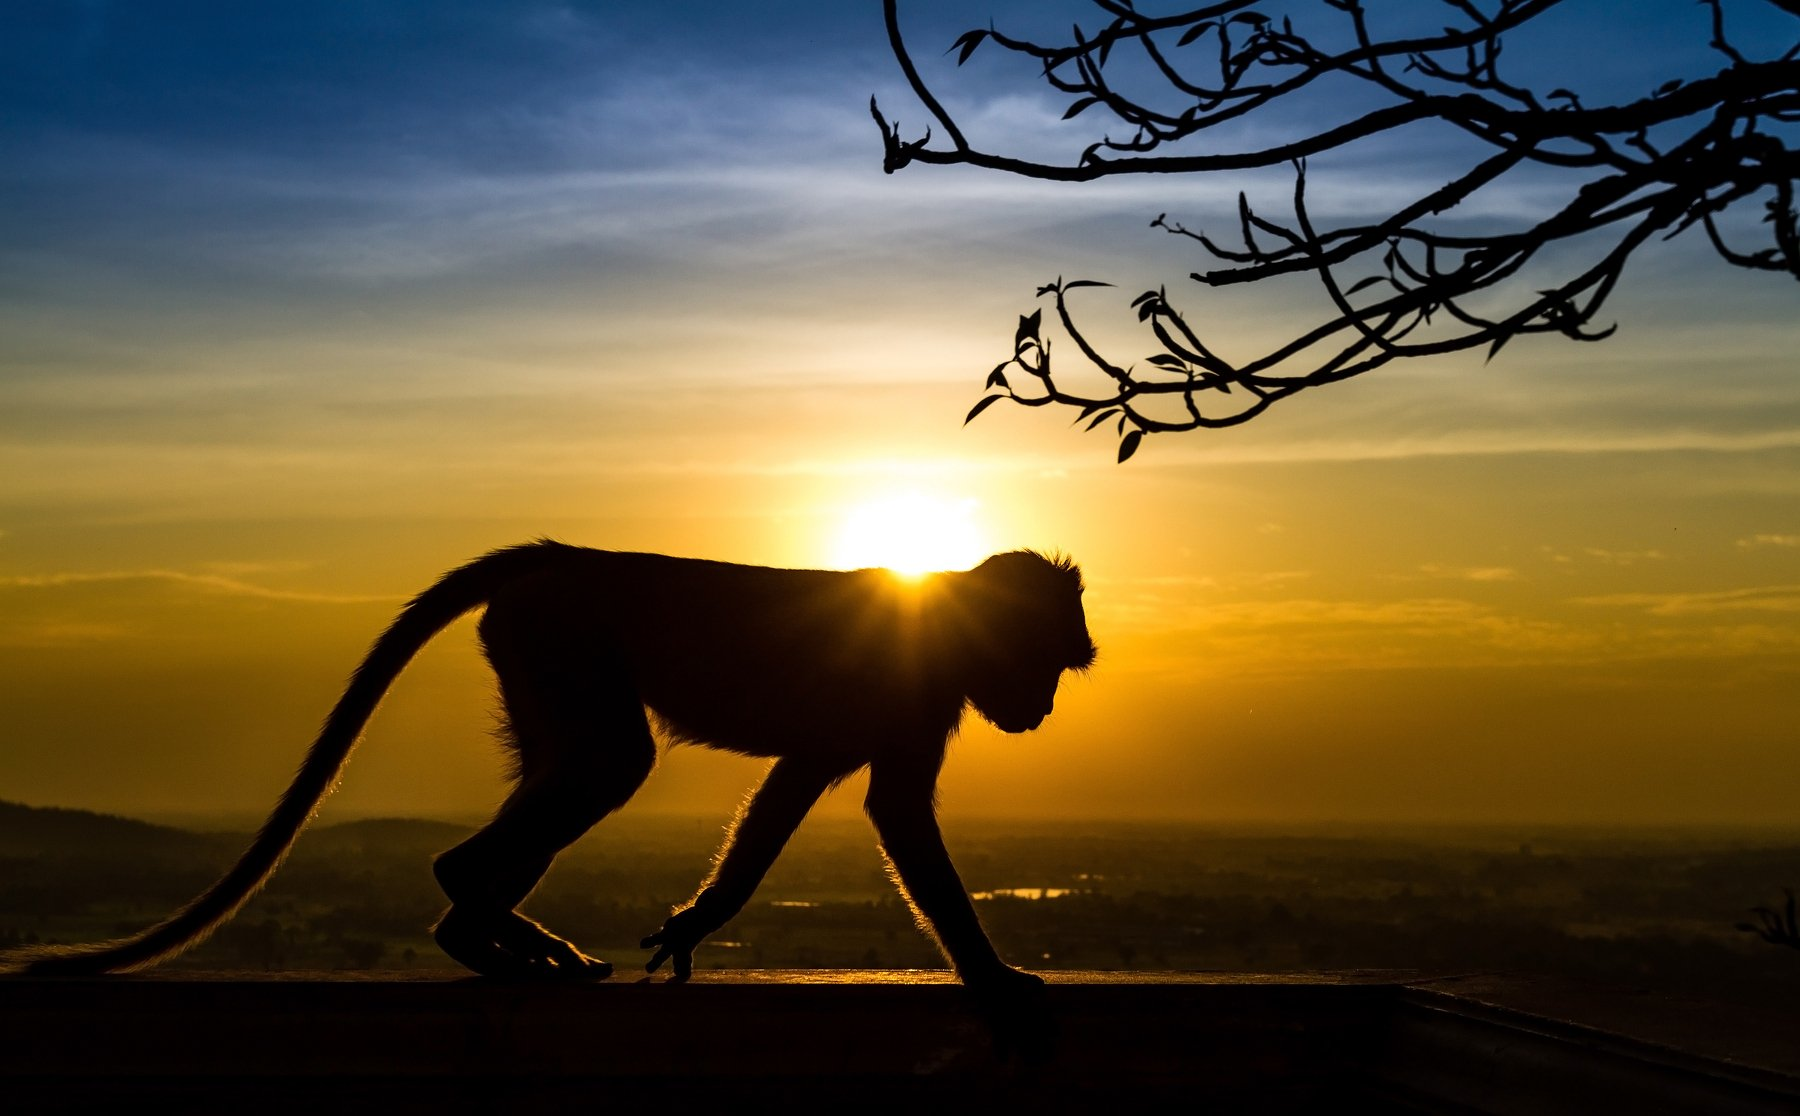 africa, kruger, monkey, sunset, sunlight, baby, animal hair, mammal, fur, shadow, orange, kruger national park, dusk, sun, father, asia, family, young, baboon, wilderness, primate, south africa, dawn, infant, mother, silhouette, wild, animal, safari, wil, Sasin Tipchai